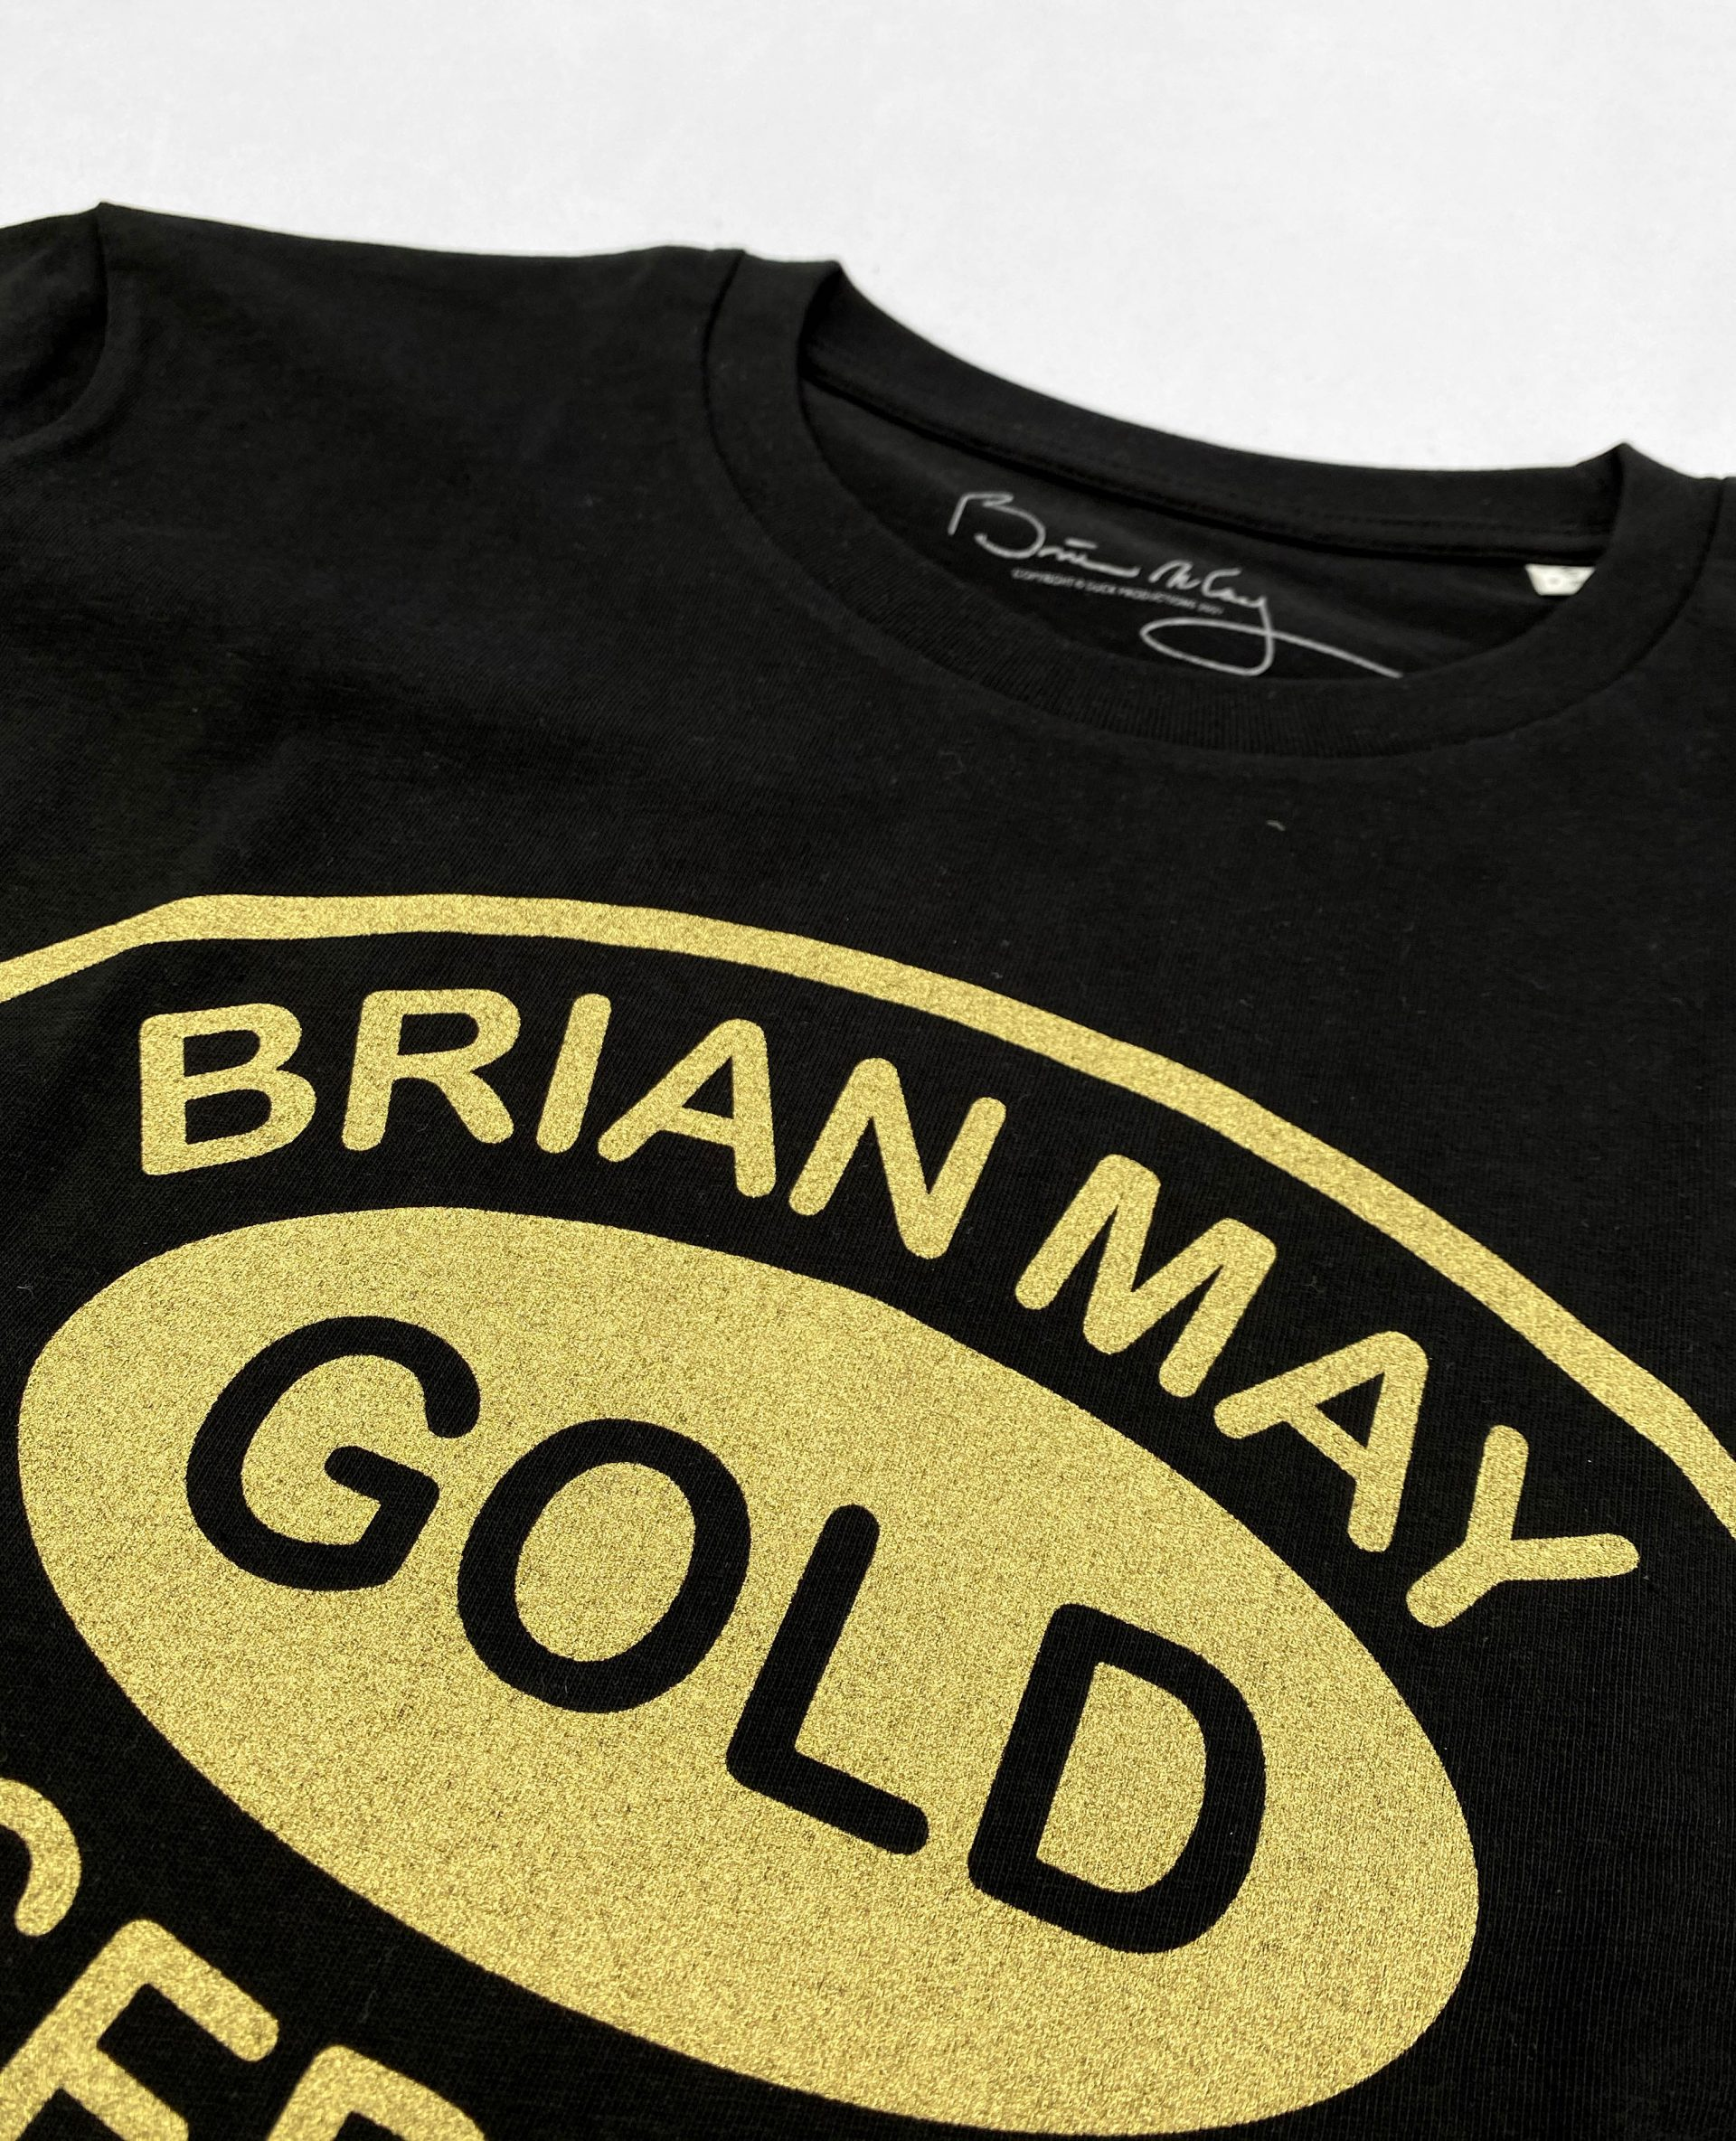 Screen printed with a metalic gold ink for Brian May and Universal Music by Paul Bristow's